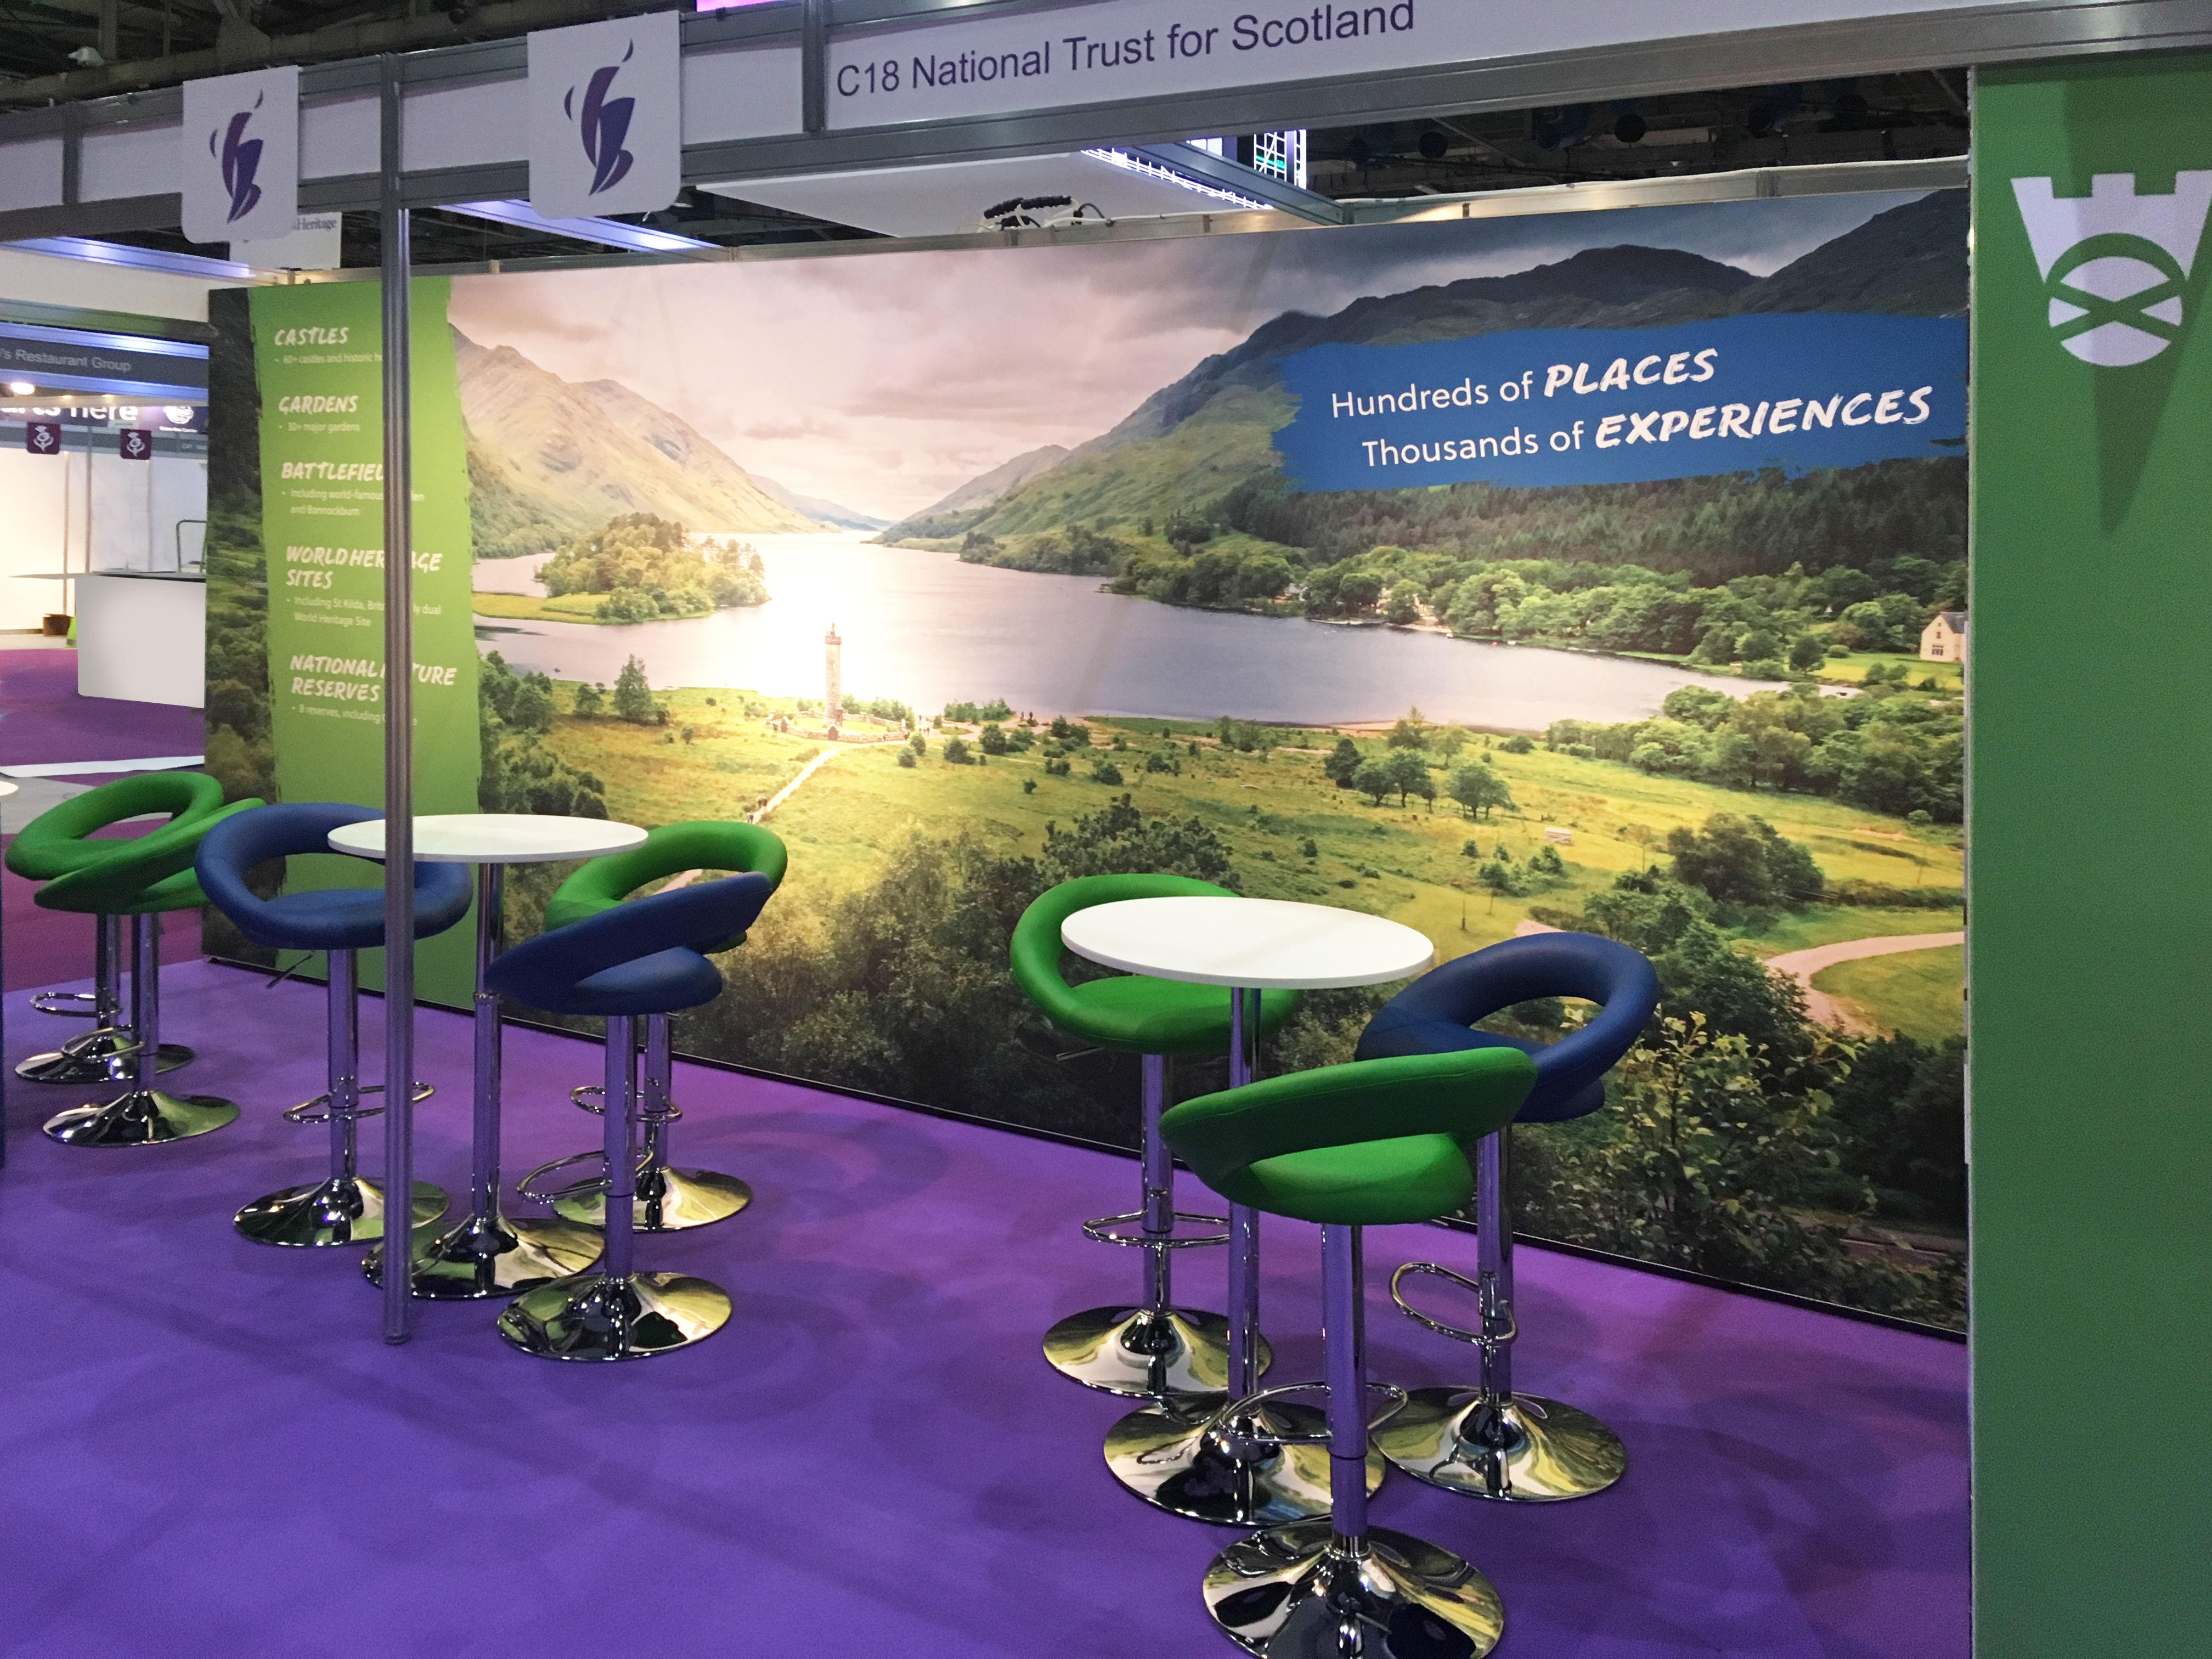 Expo Exhibition Stands Uk : Learn from visiting other exhibition stands discount displays